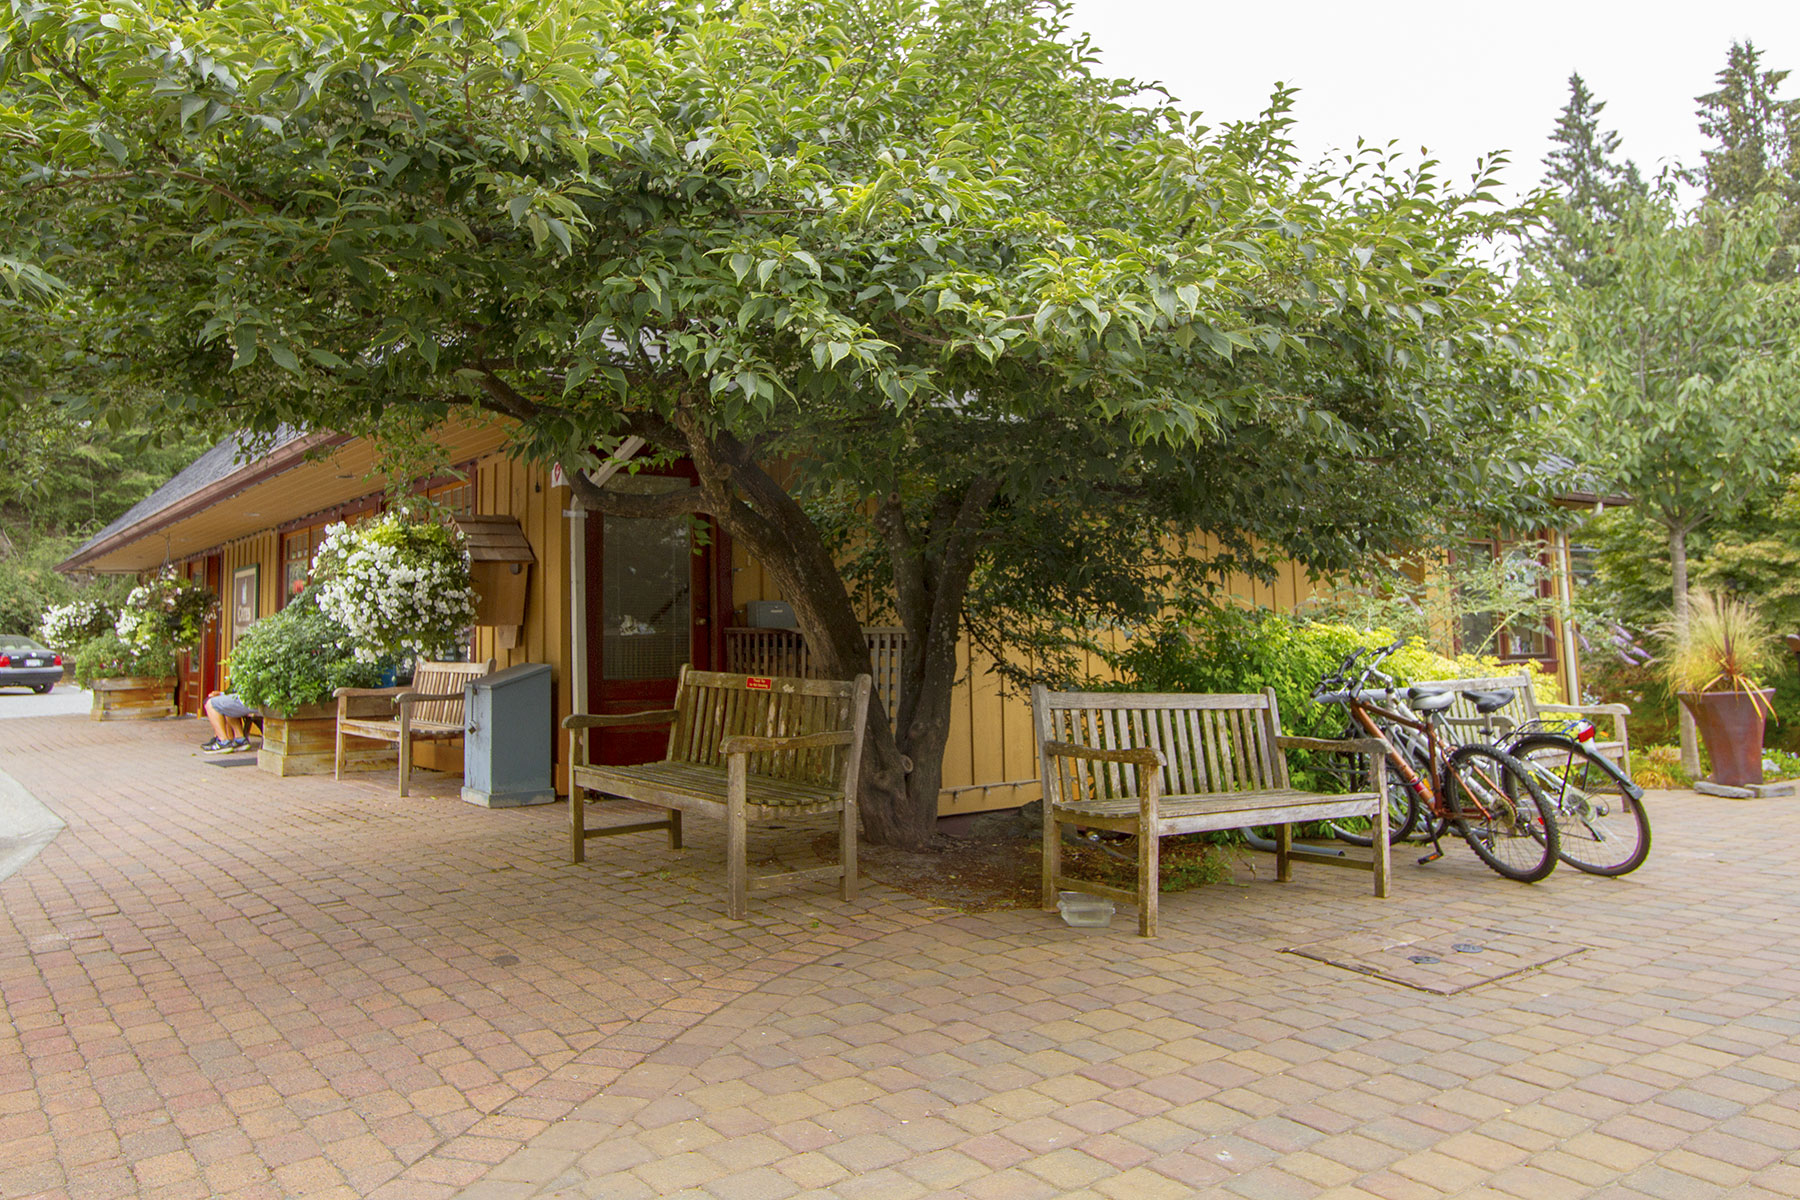 Village Square, showing a wide patio with rounded oblong pavers and a tree branching out over two wooden benches